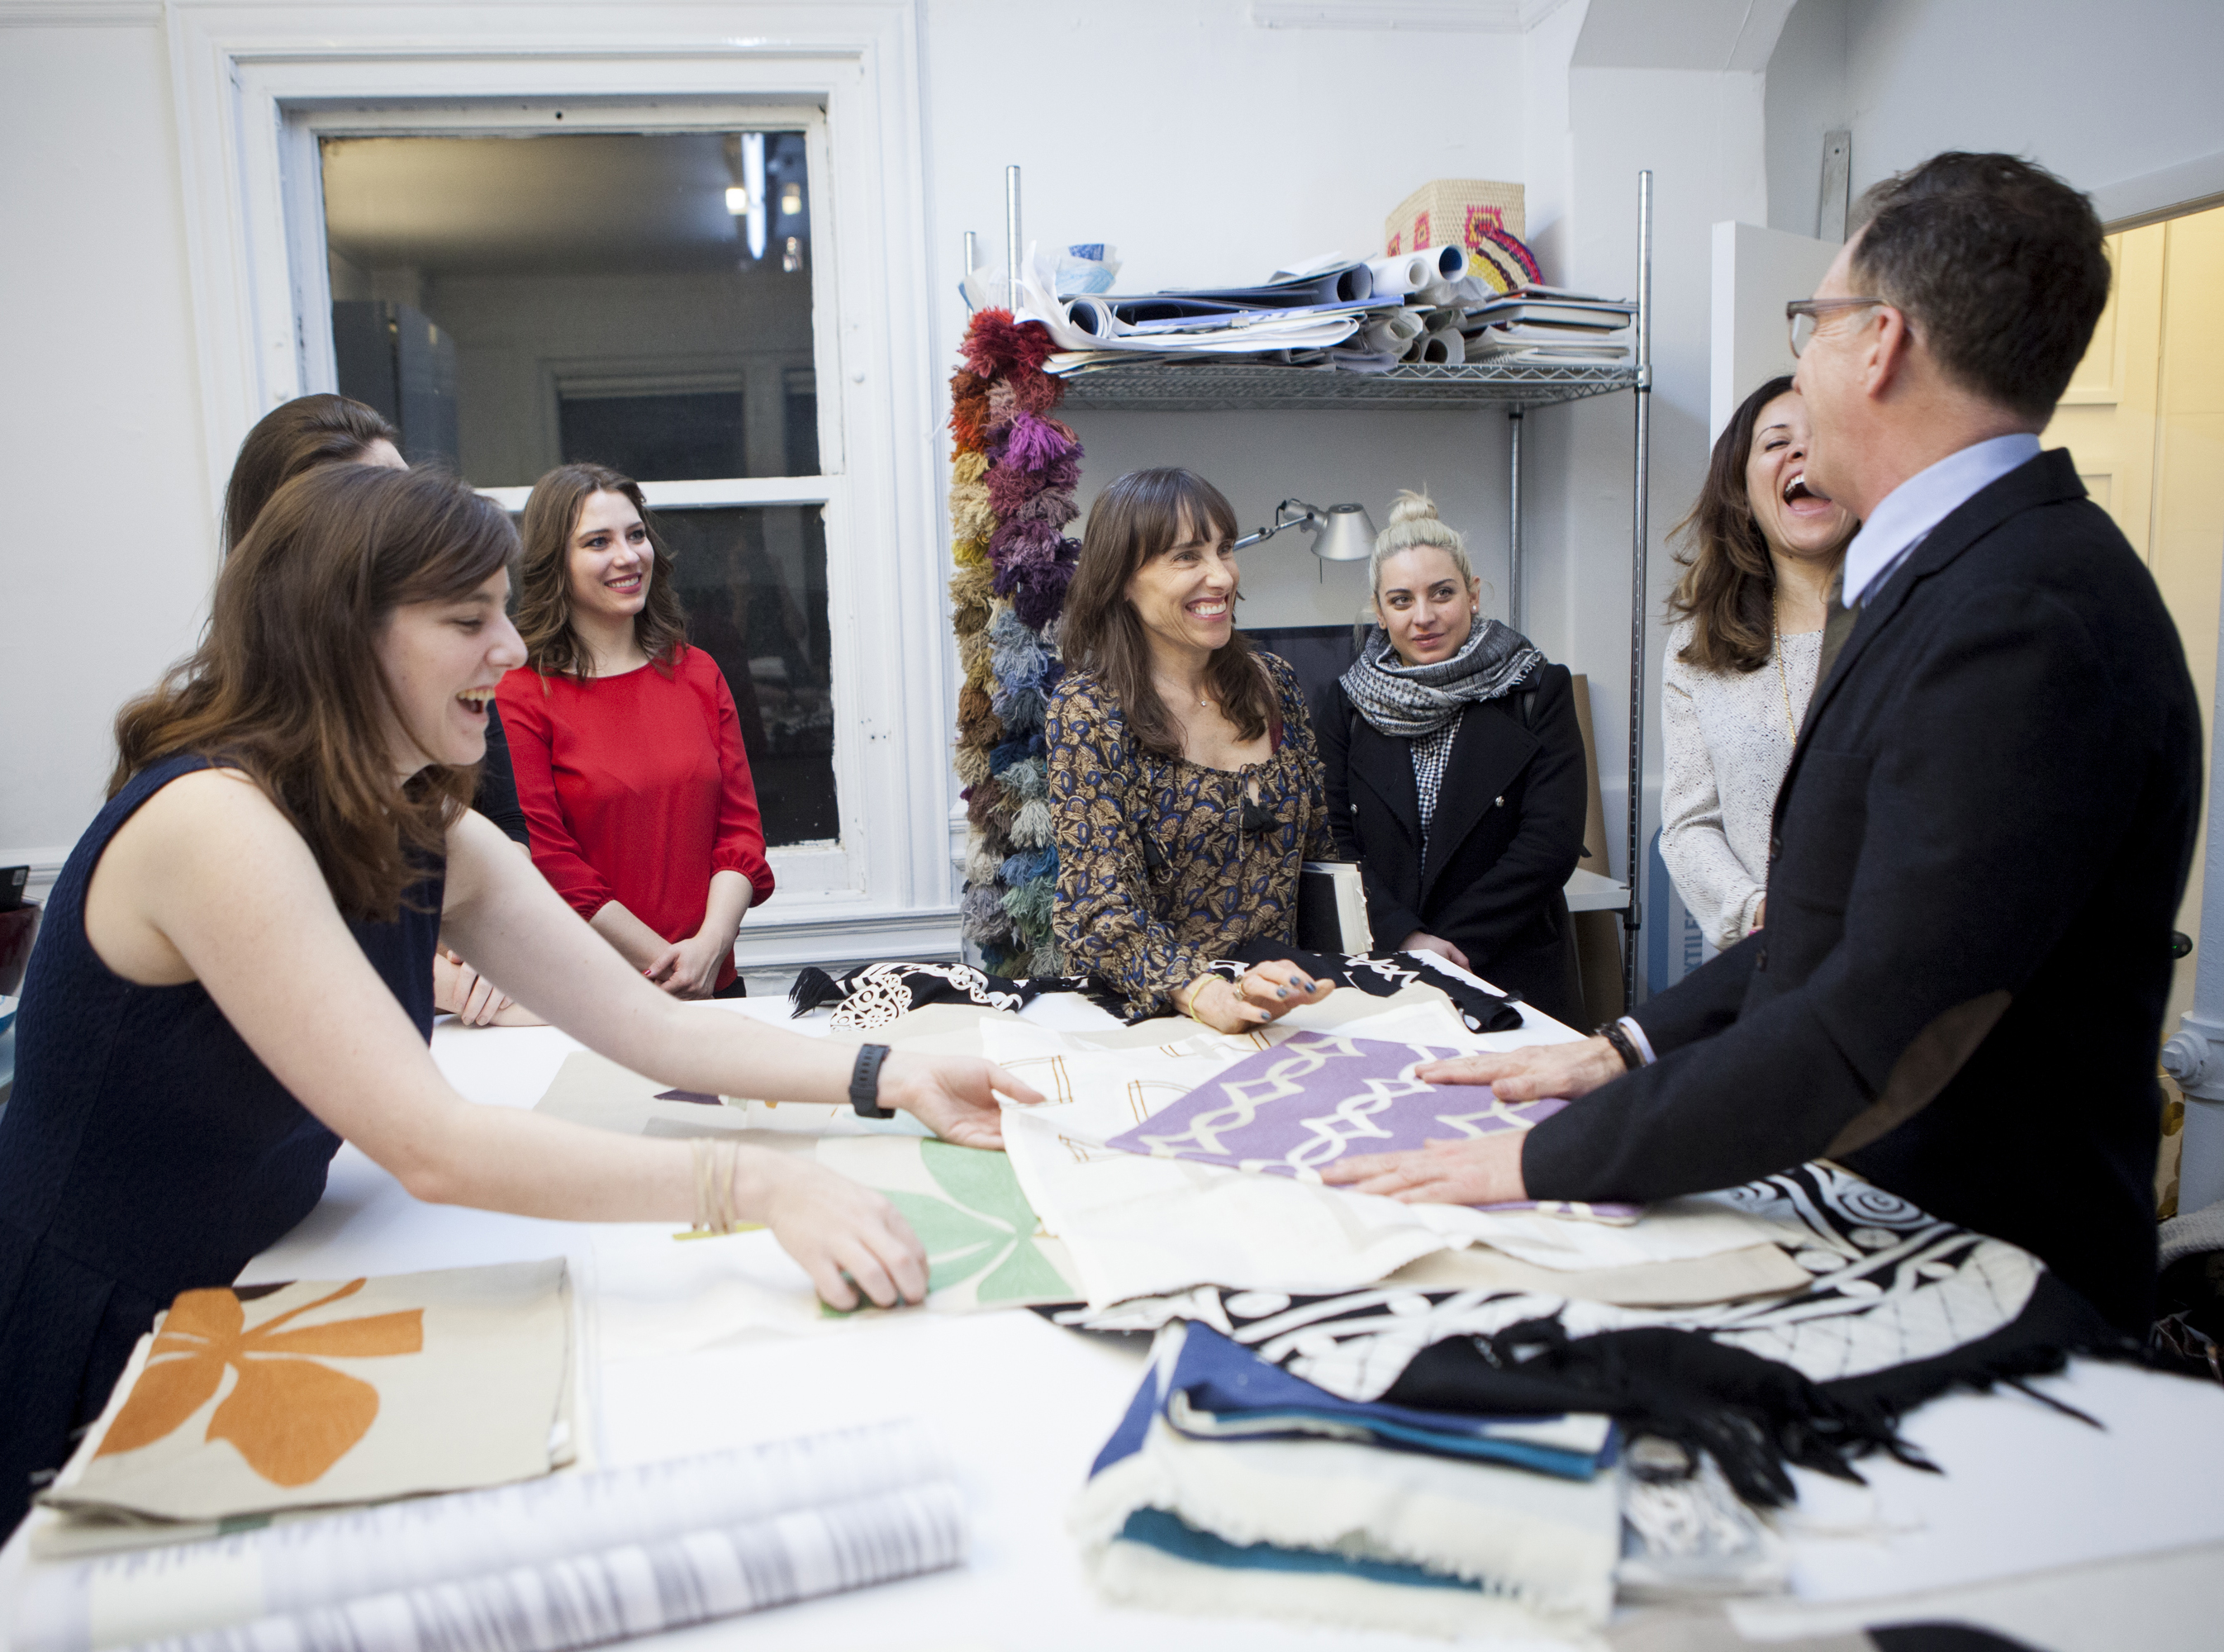 The group sharing laughs and looking at handwoven pillows